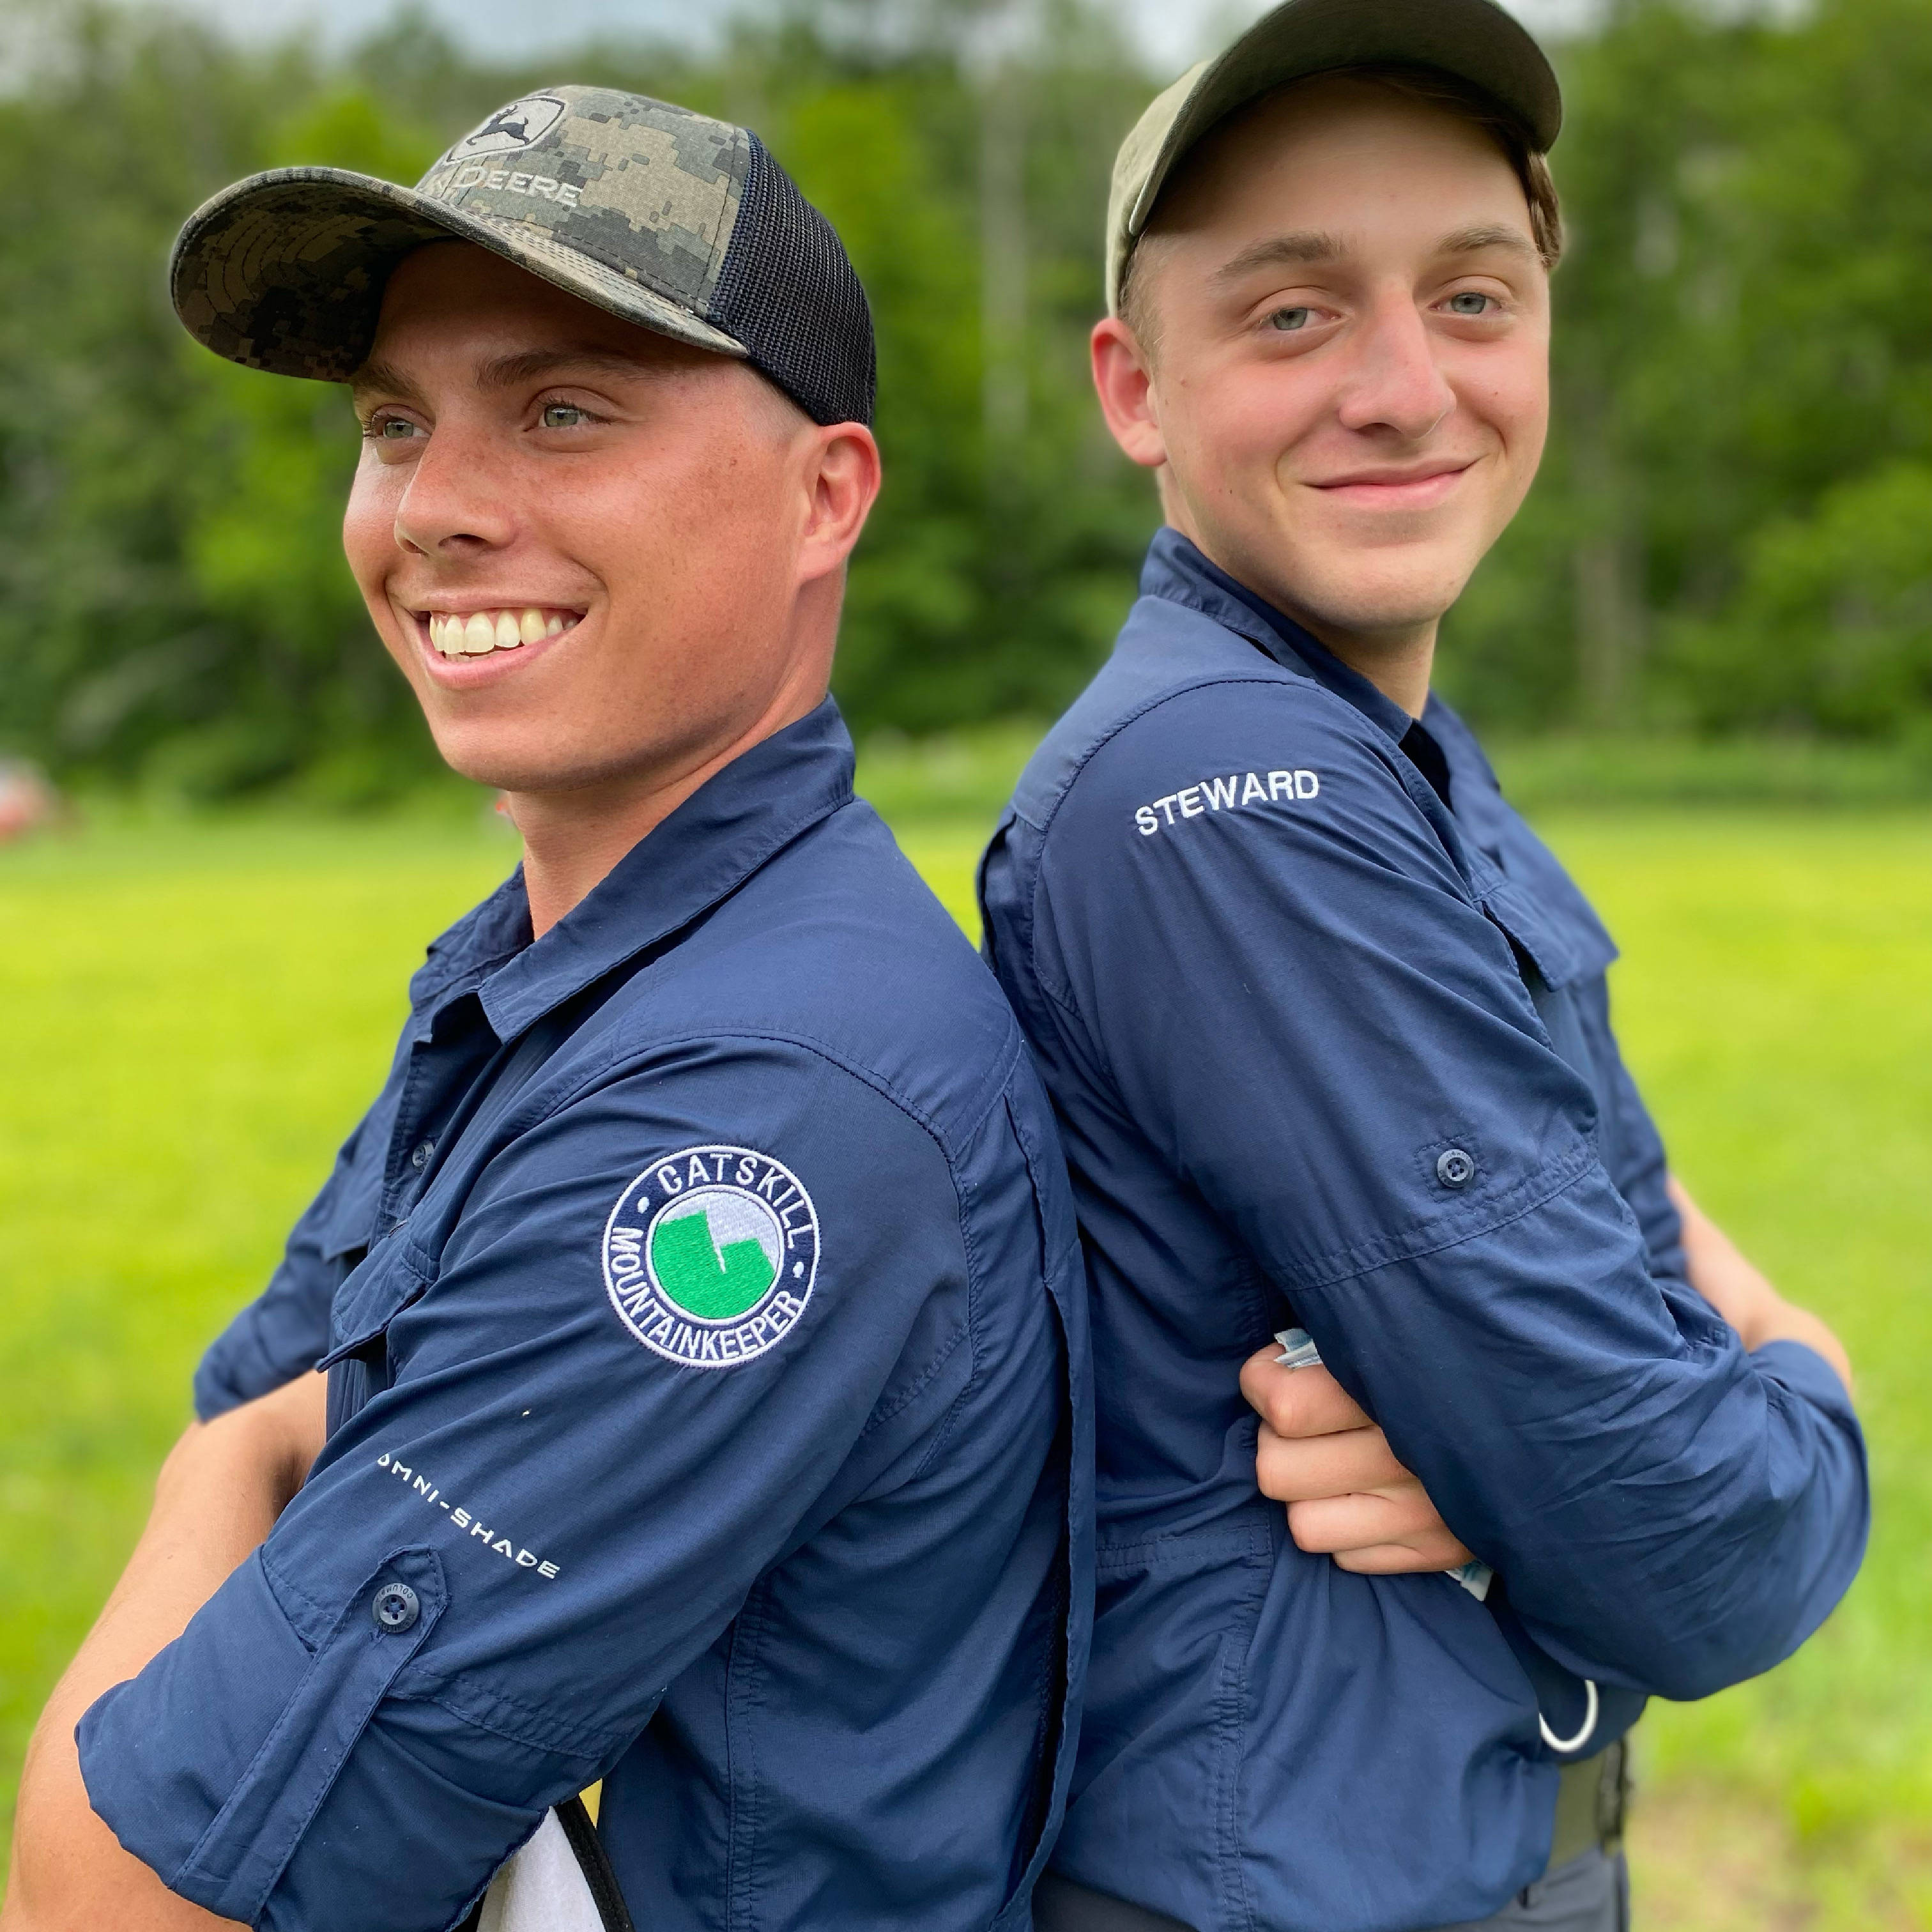 Picture of Lenny and Noah wearing hats and Mountainkeeper stewards